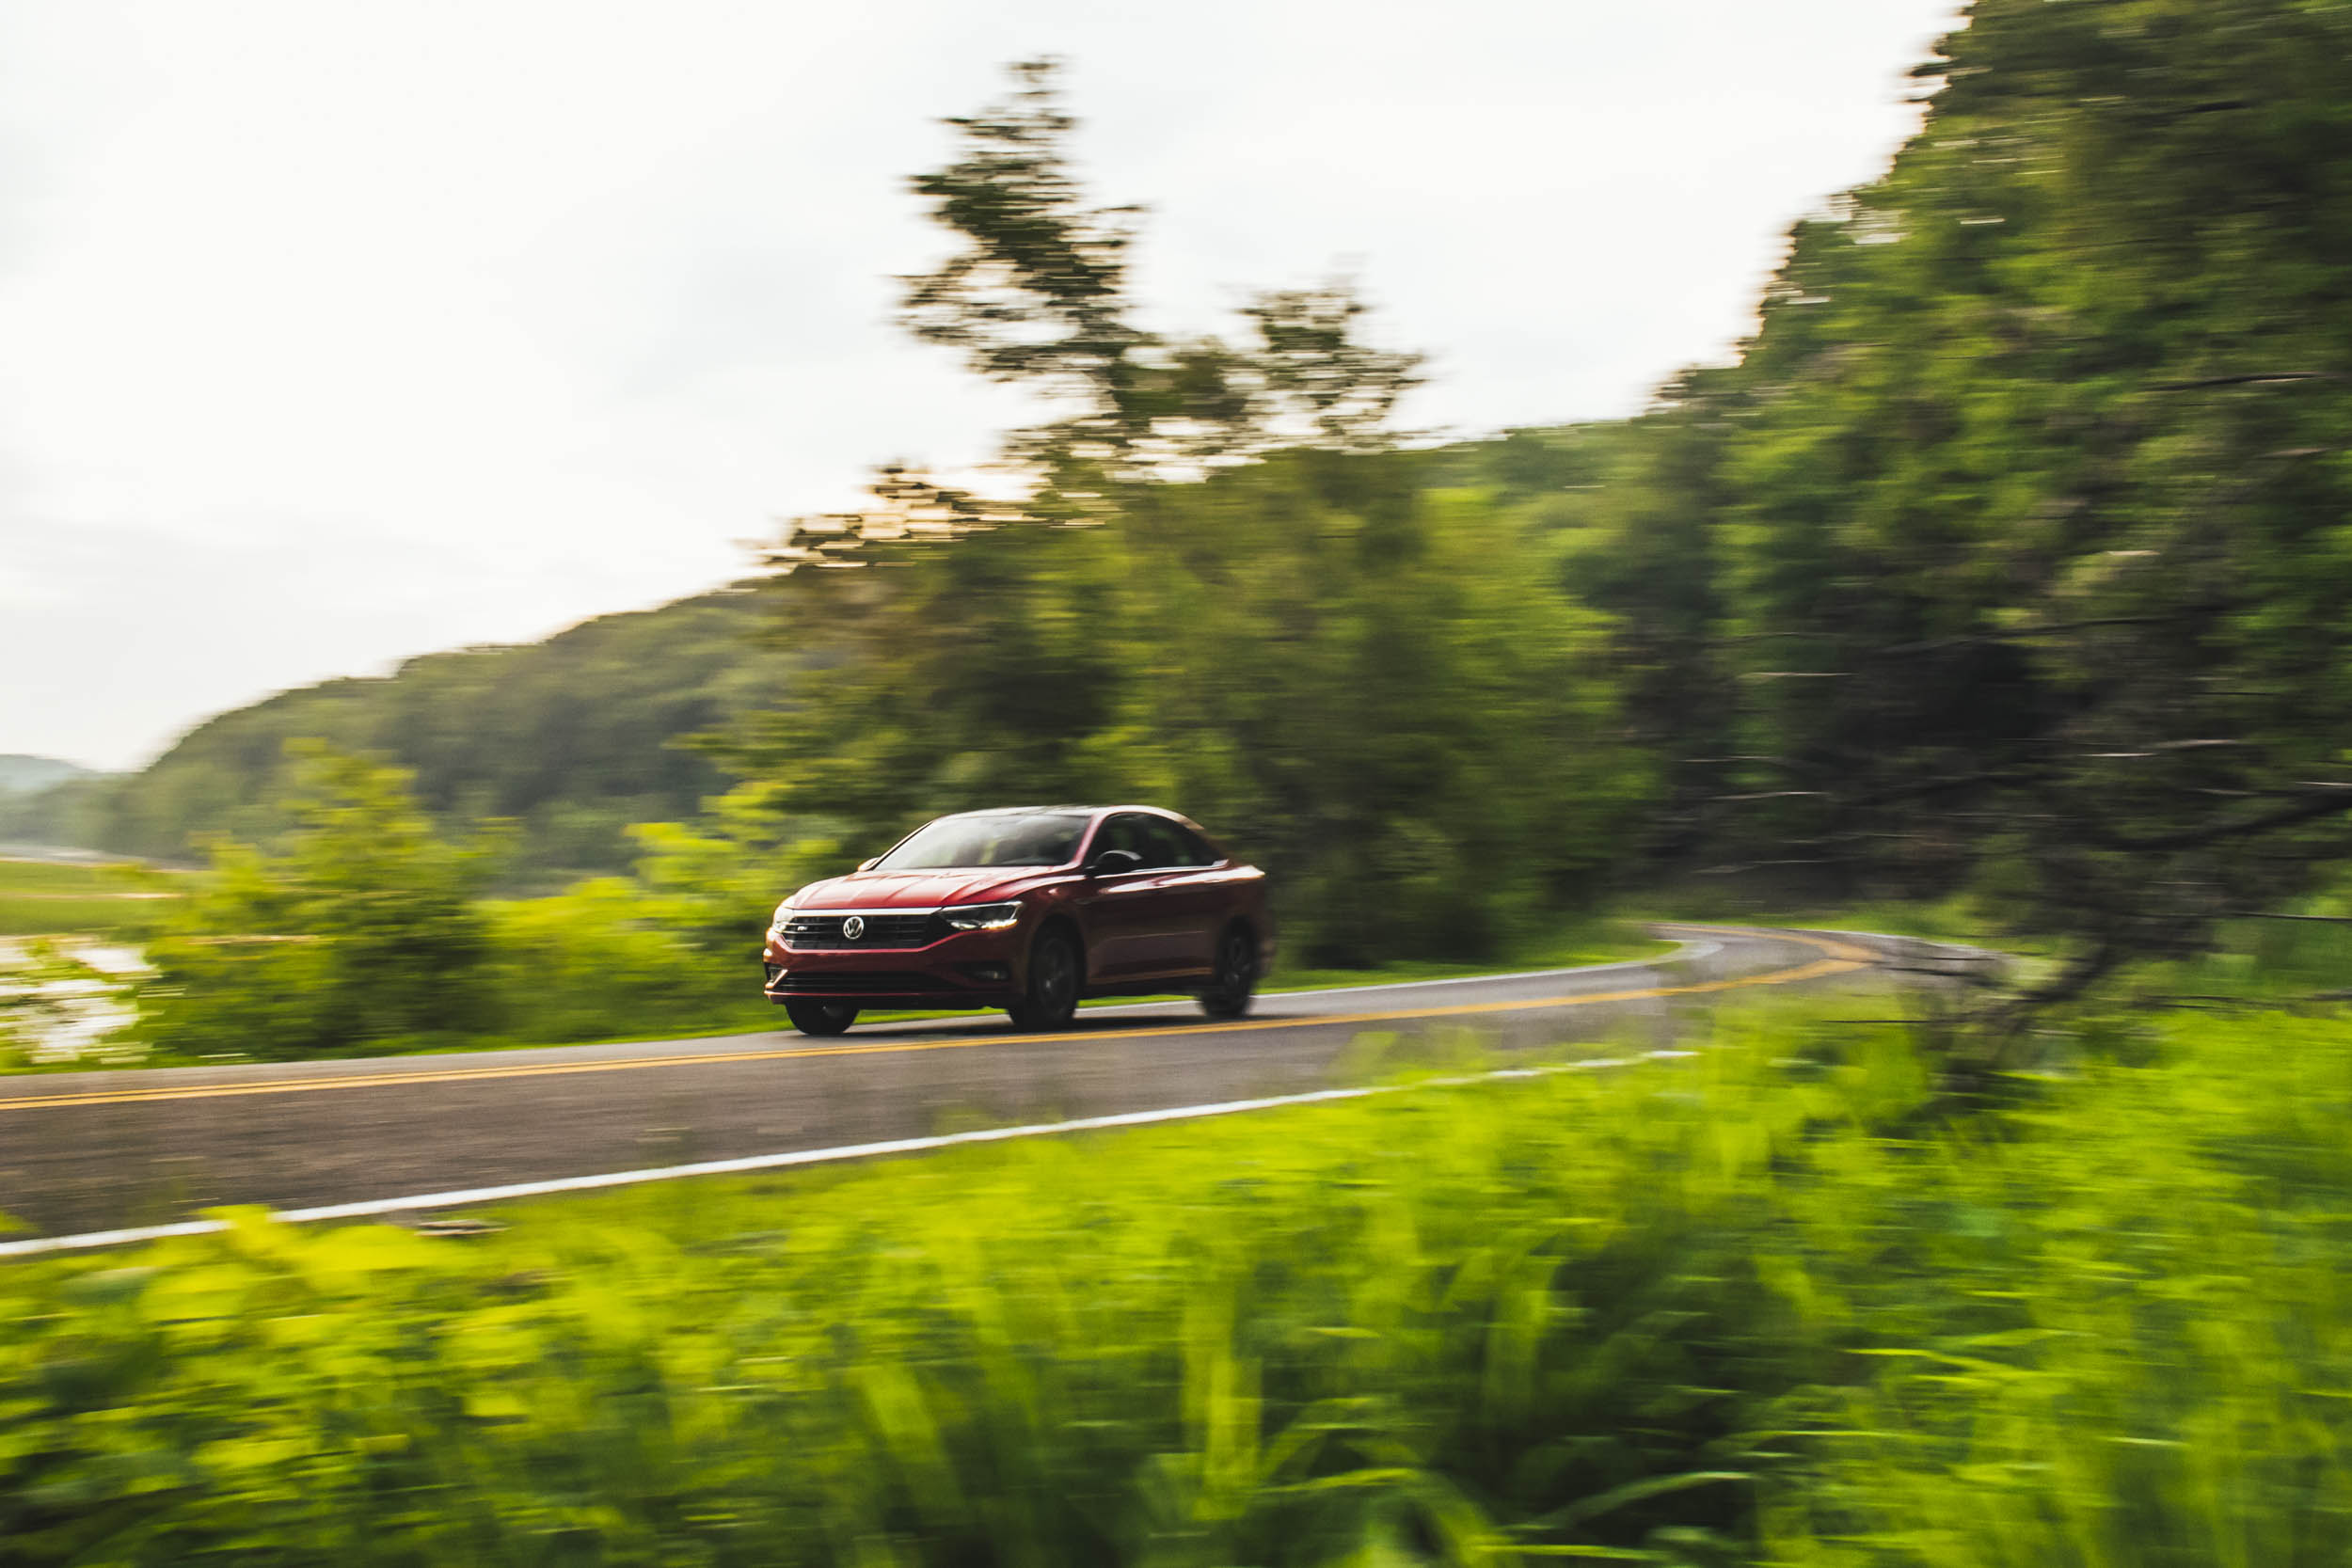 volkswagen jetta r-line driving alone on road